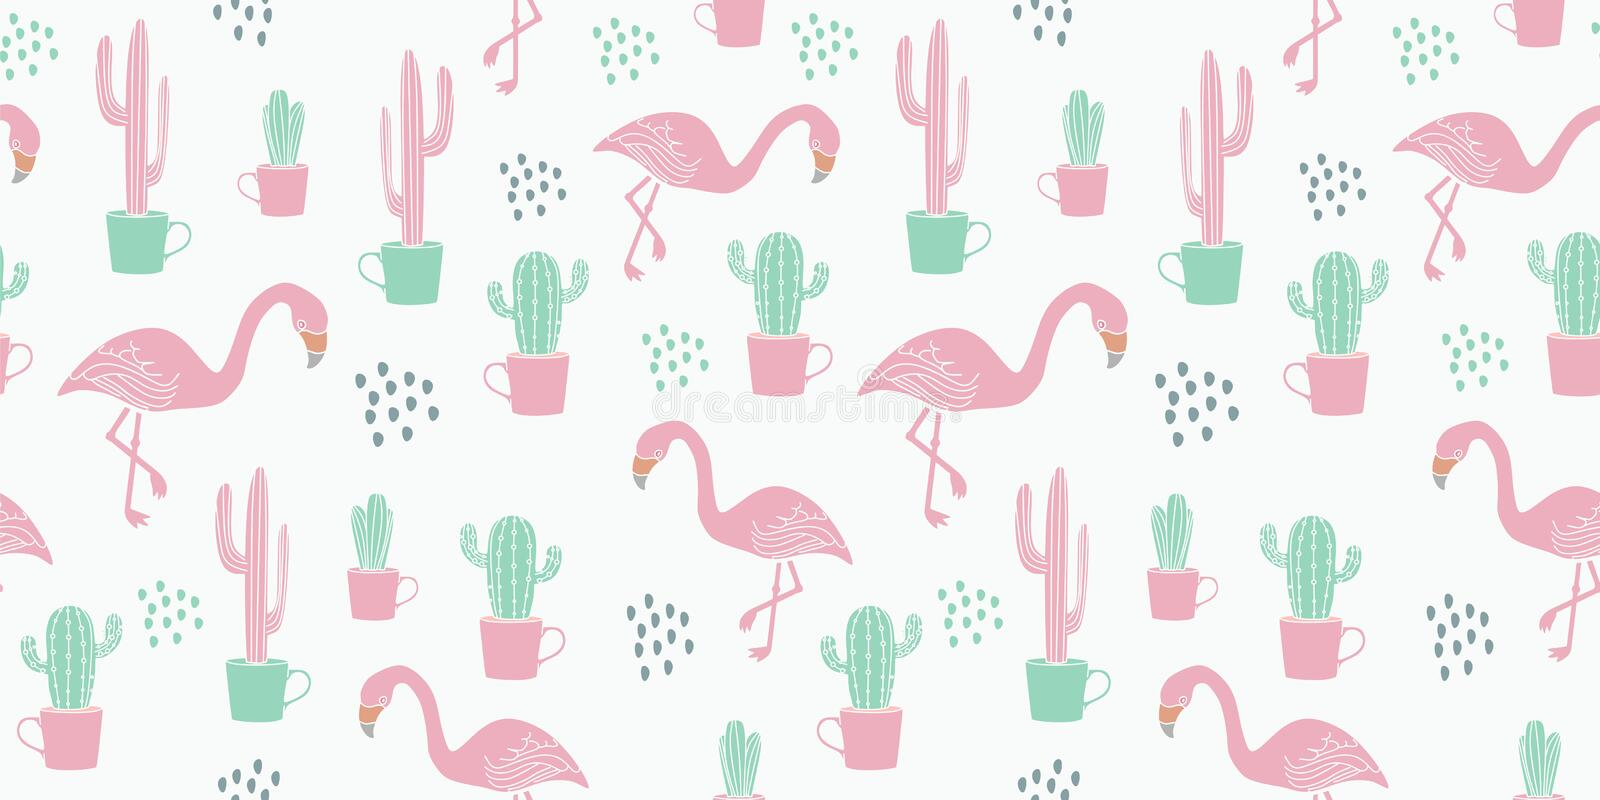 Vector tropical seamless pattern background with flamingo hand drawn colorful vintage childish drawing style stock illustration